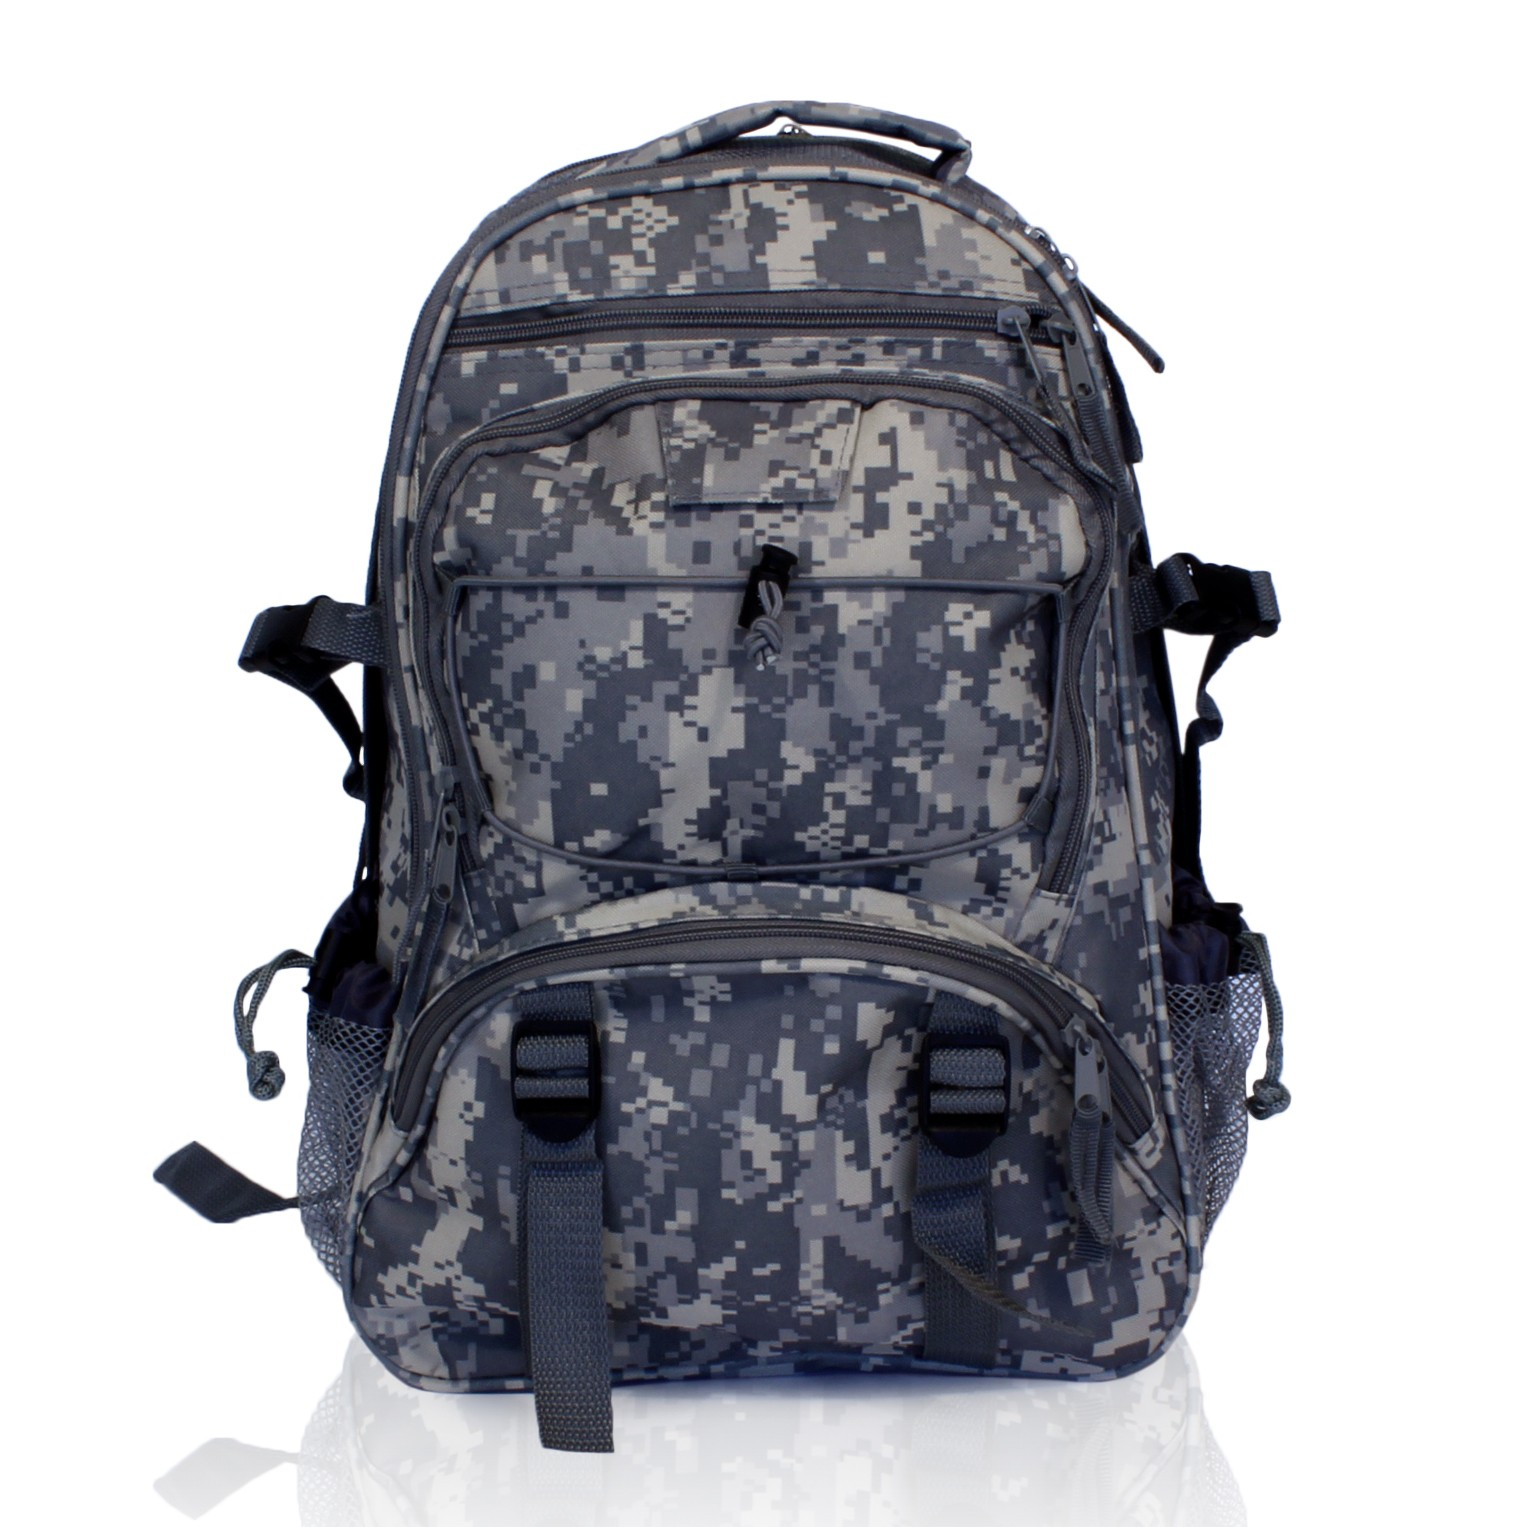 19 05 22 14 19 06 original bcm   camo backpack